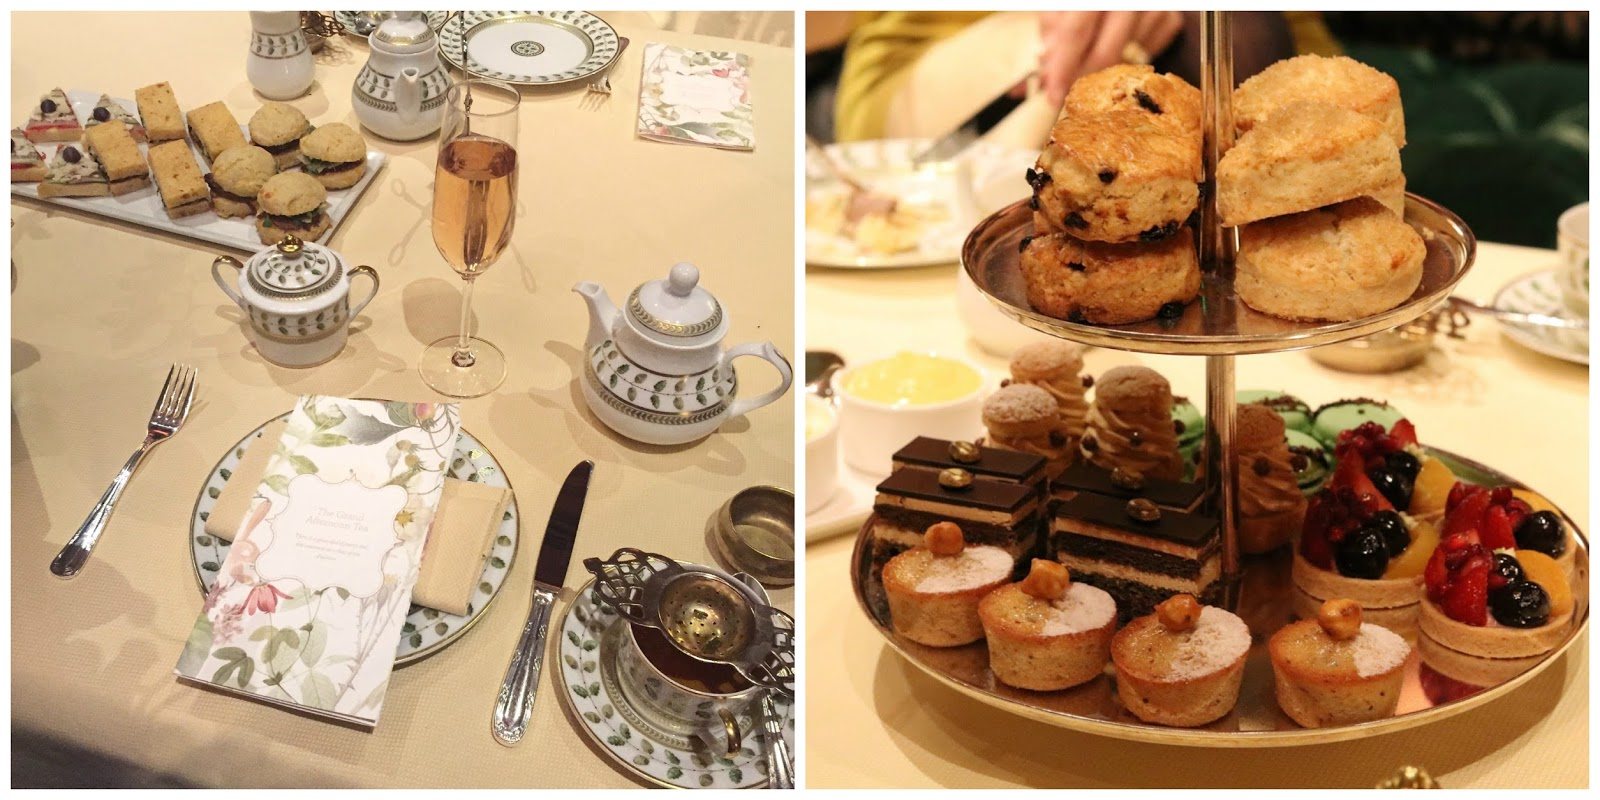 Afternoon Tea at the Grand Del Mar, Afternoon Tea at Fairmont Grand Del Mar, elegant tea rooms in San Diego